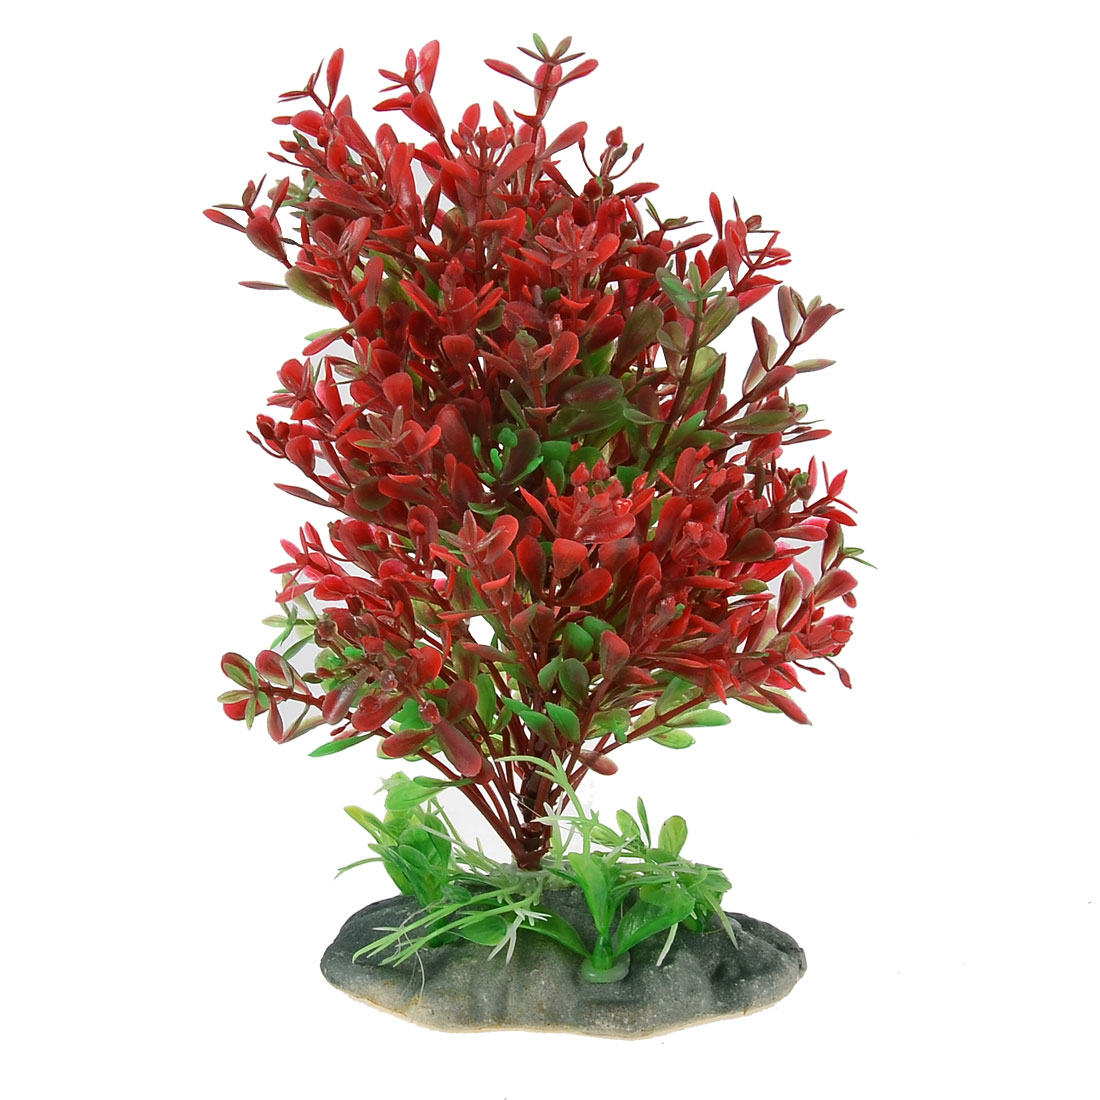 Aquarium Plastic Artificial Plant Underwater Grass Ornament Green Red